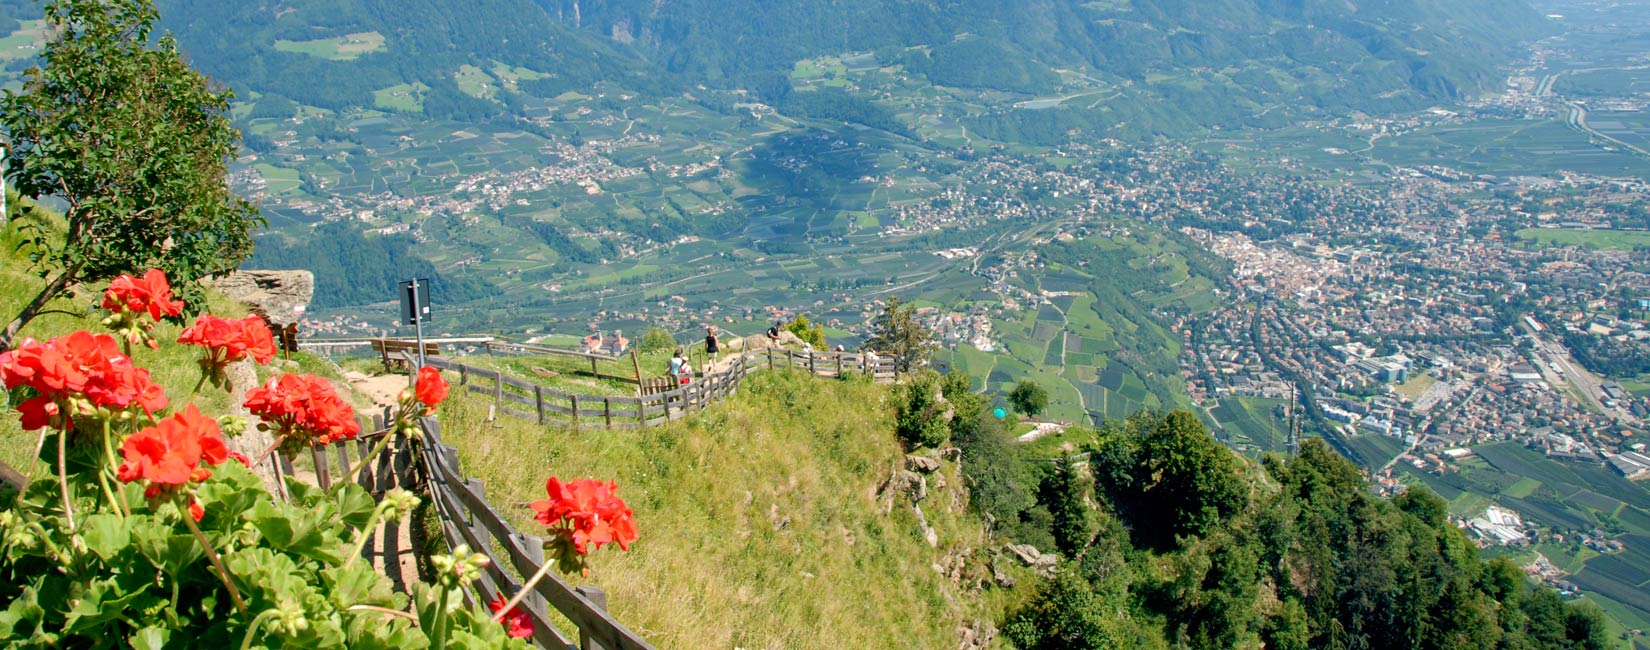 Experience and enjoy Merano